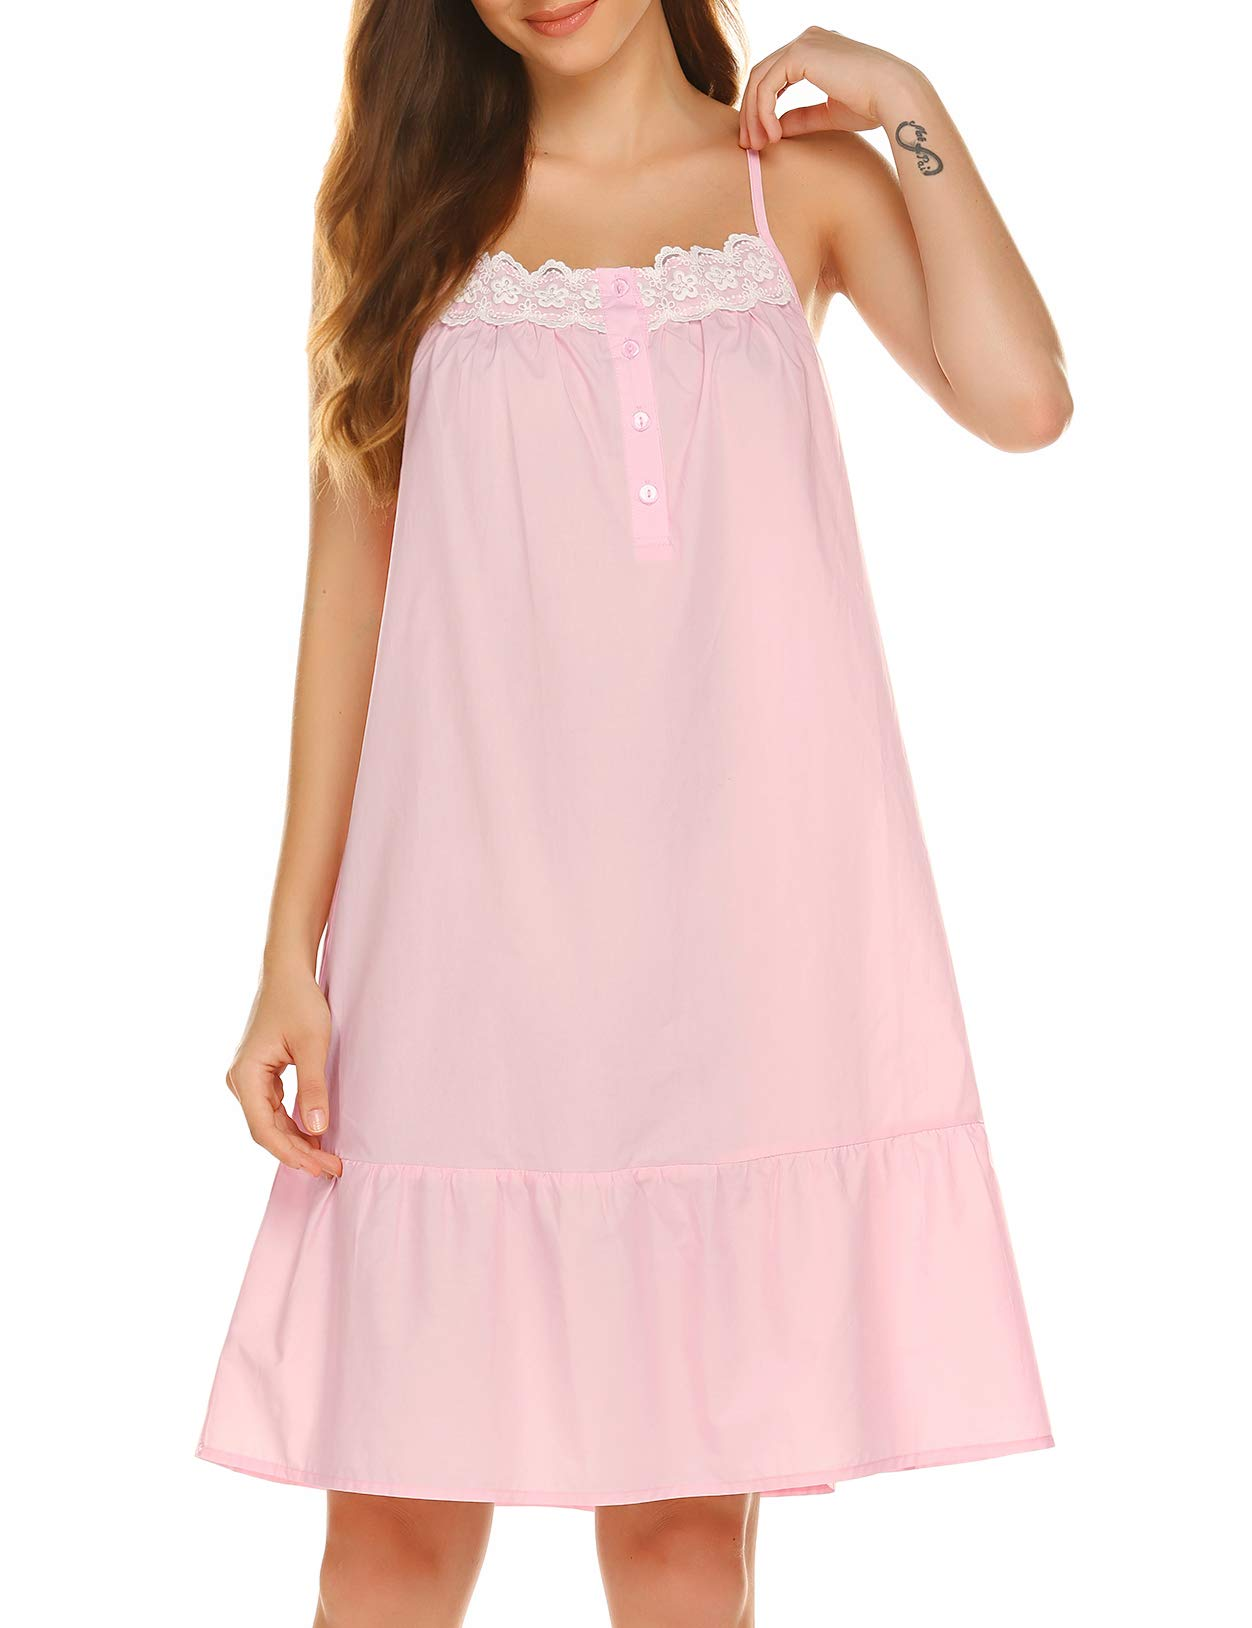 Ekouaer Sleepwear Sleeveless Nightgown Cotton Sleep Dress Victorian Sleepshirt Strap Gown for Women S-XXL